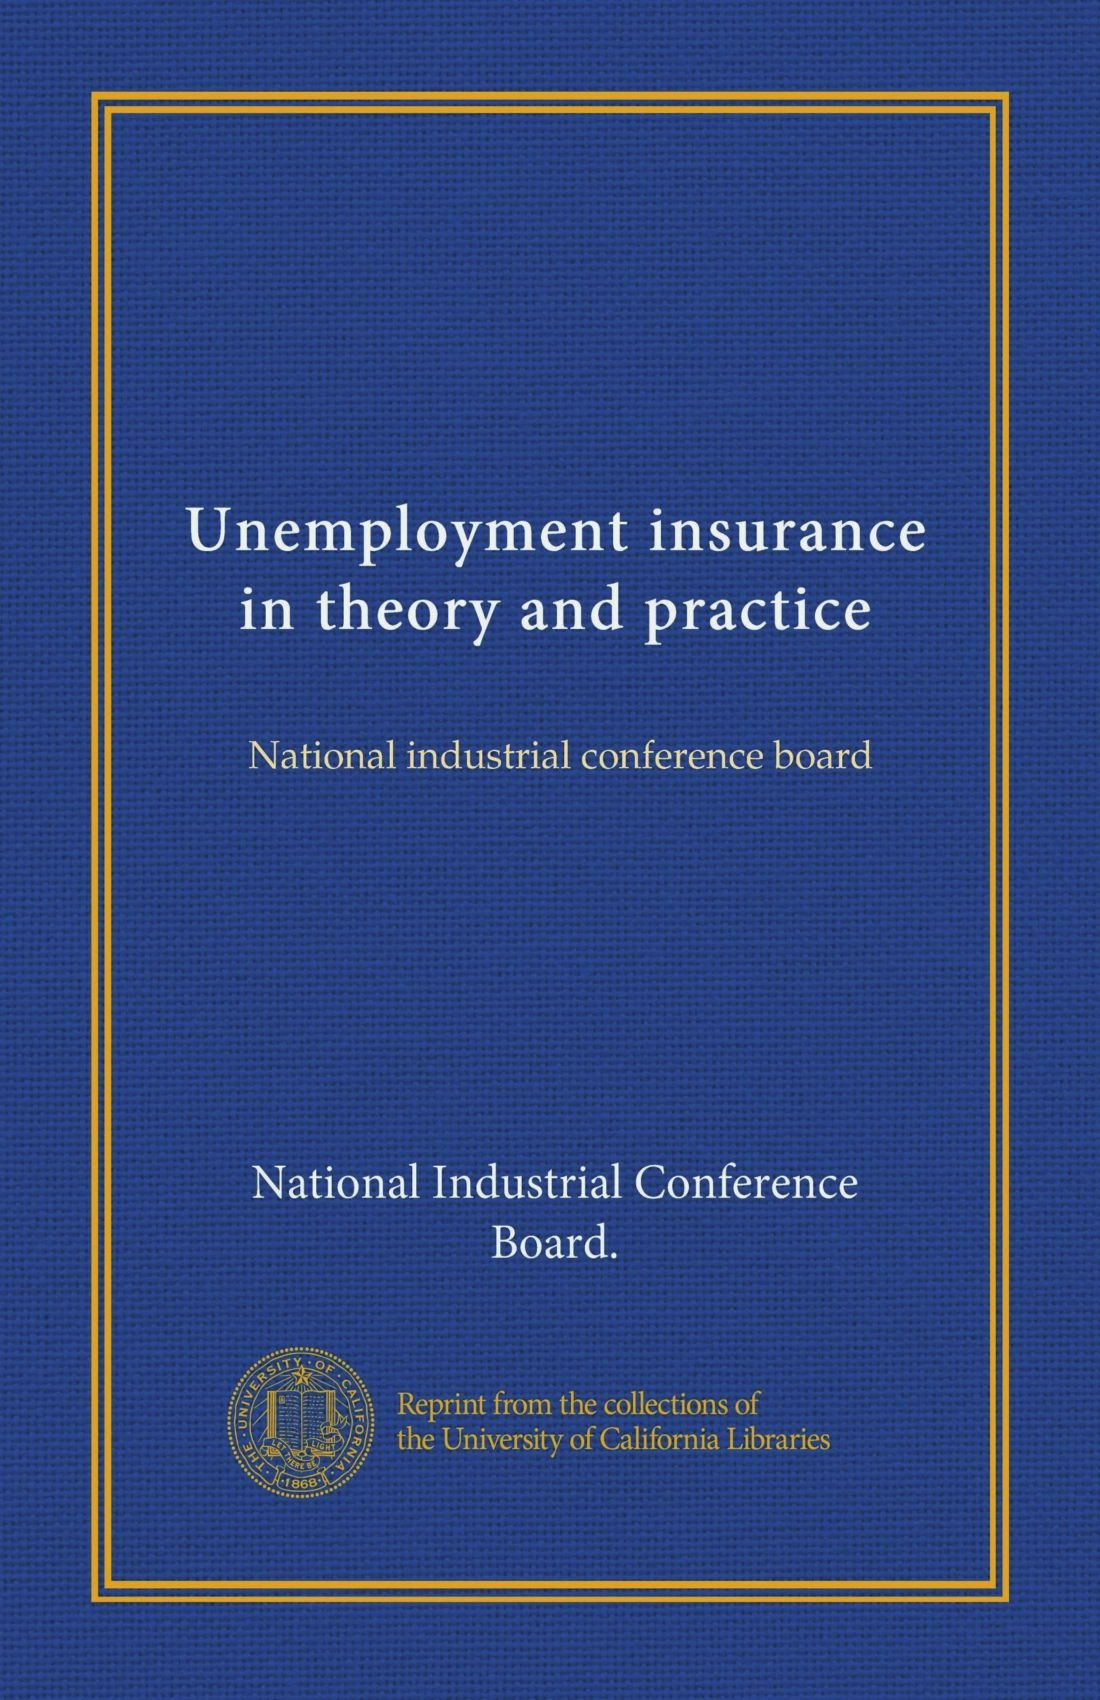 Unemployment insurance in theory and practice: National industrial conference board